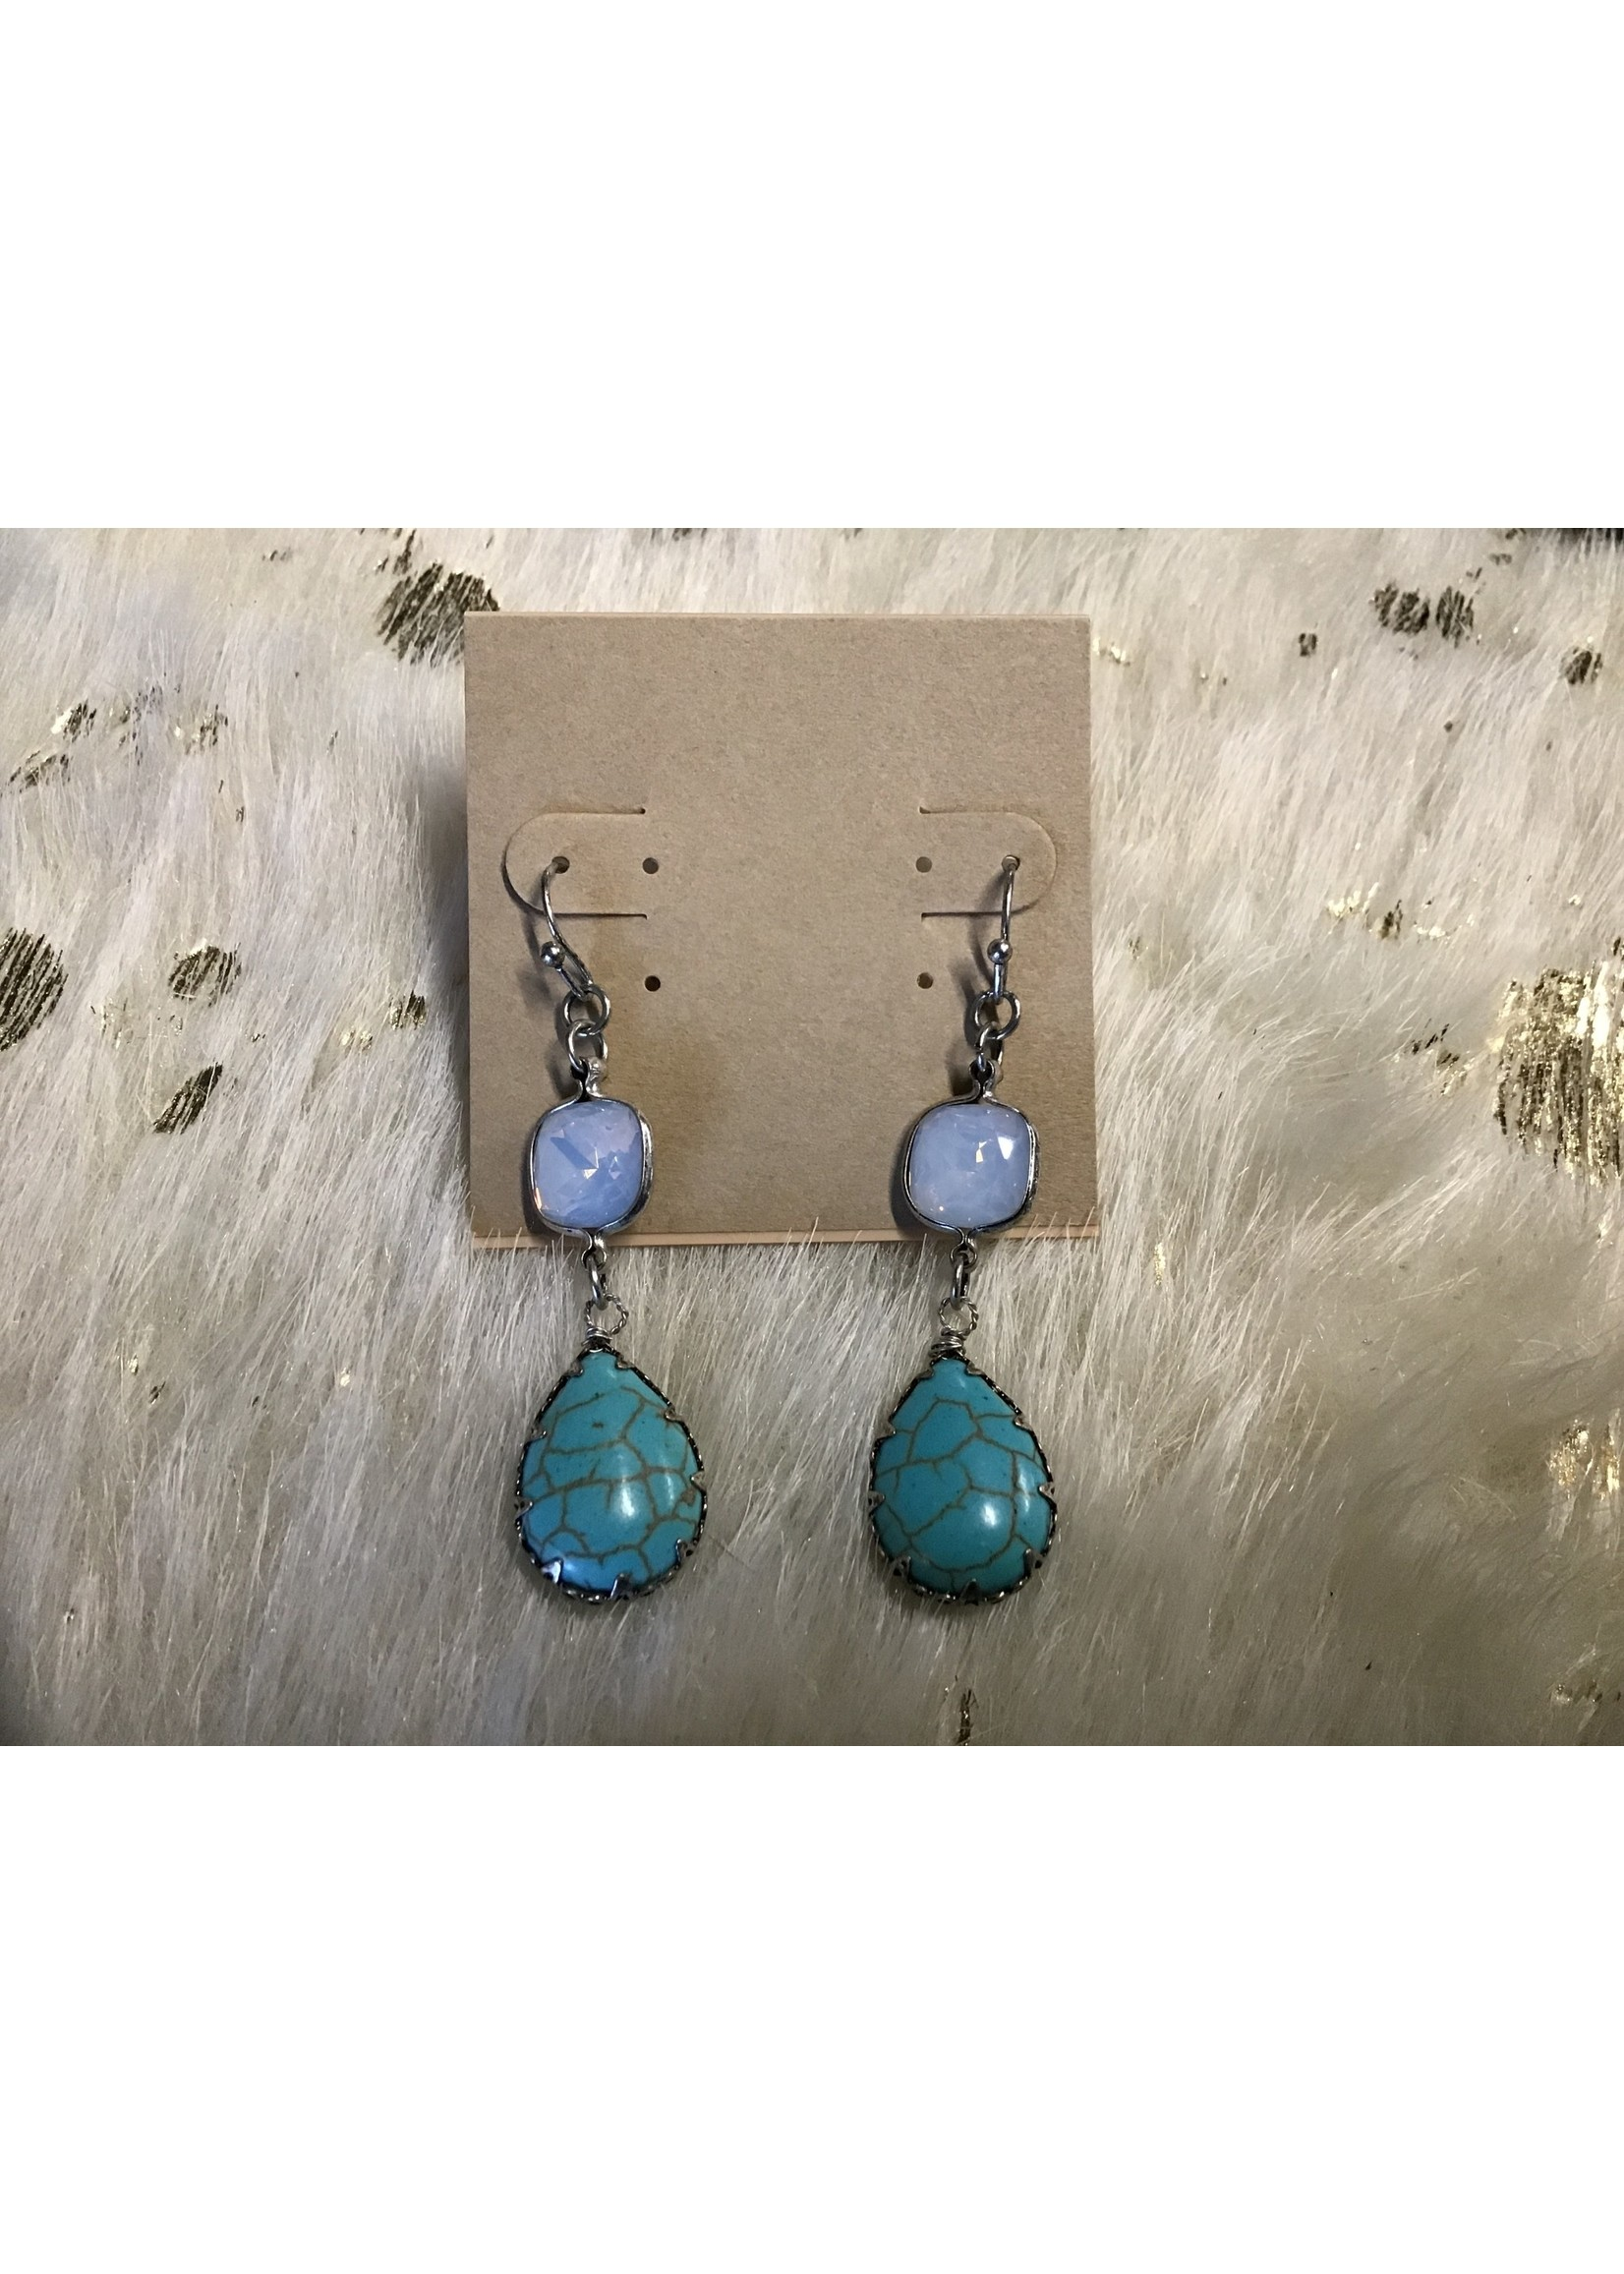 EAR-TQSTONE EARRING STONE TURQUOISE/PEARL